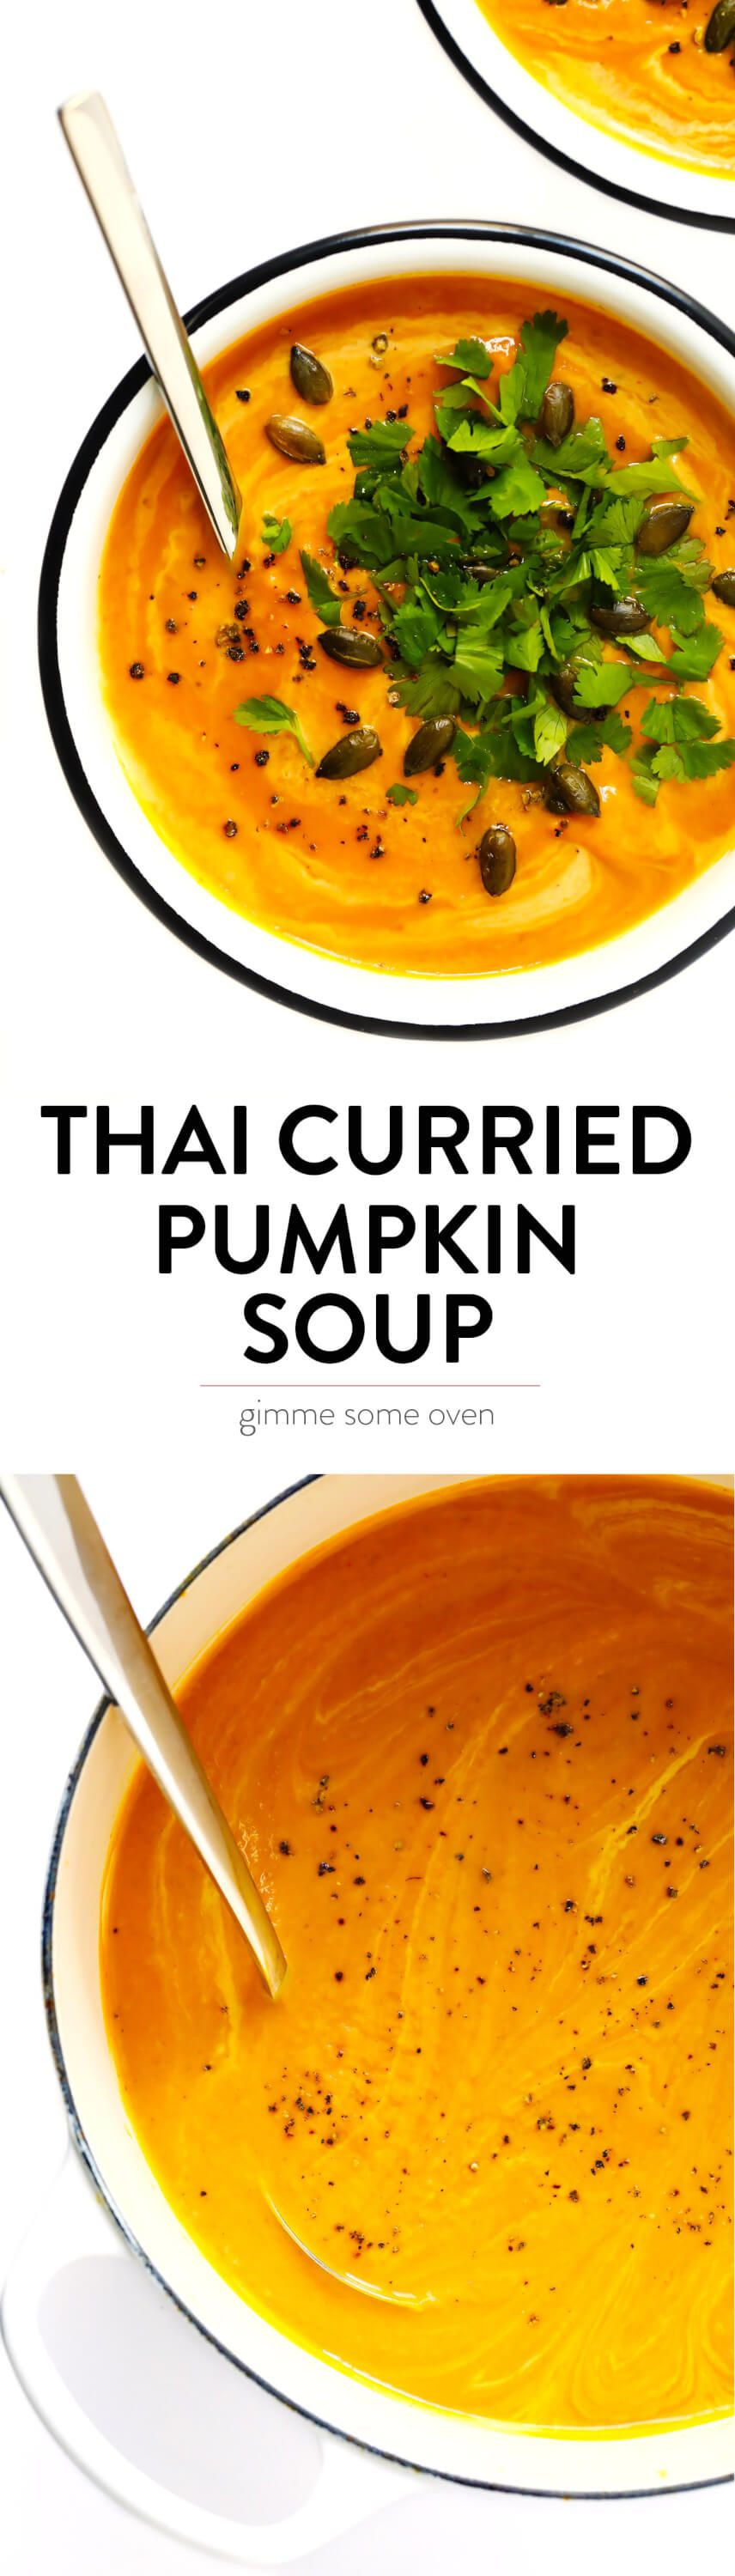 This 20Minute Thai Curried Pumpkin Soup is the best Its quick and easy to make naturally glutenfree and vegan and made with the best warming curry flavors Perfect for win...